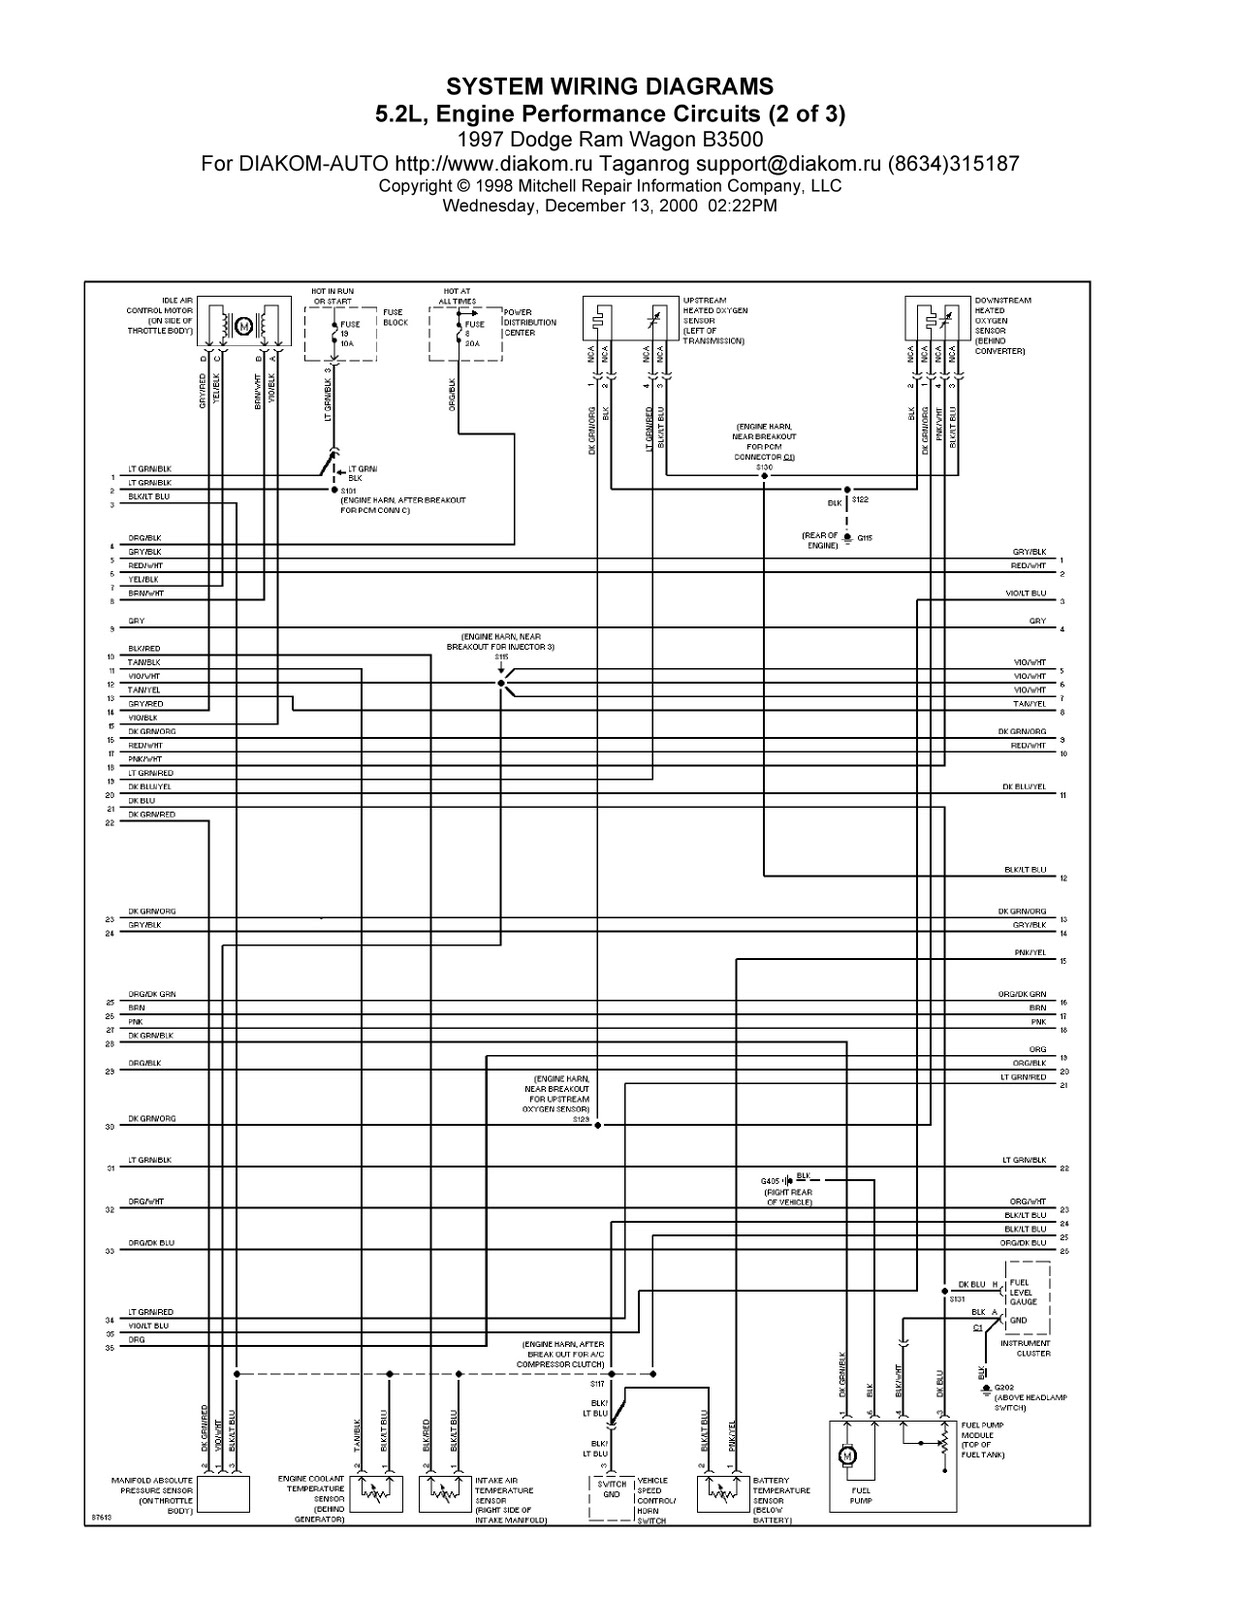 2005 Dodge Ram Srt 10 Wiring Diagram Full Hd Version Manual Guide